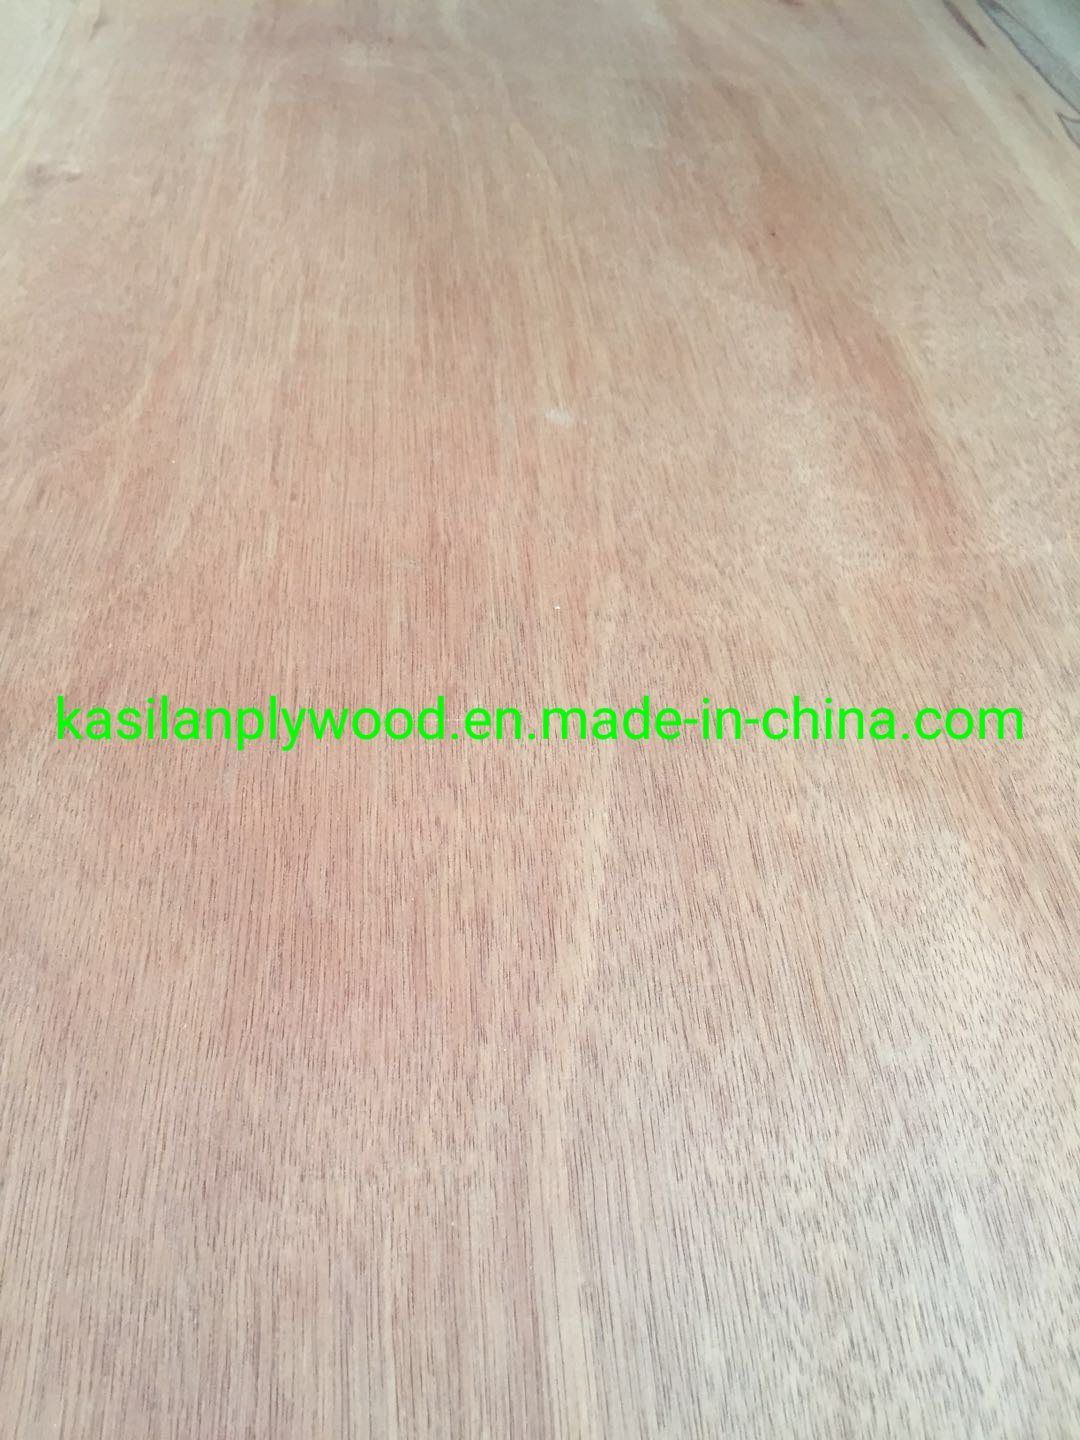 China Hot Sale Best Price Golden Teak Fancy Plywood Natural Teak Veneer Plywood With Ce Carb Fsc Sgs Iso Certified China Plywood Pine Plywood